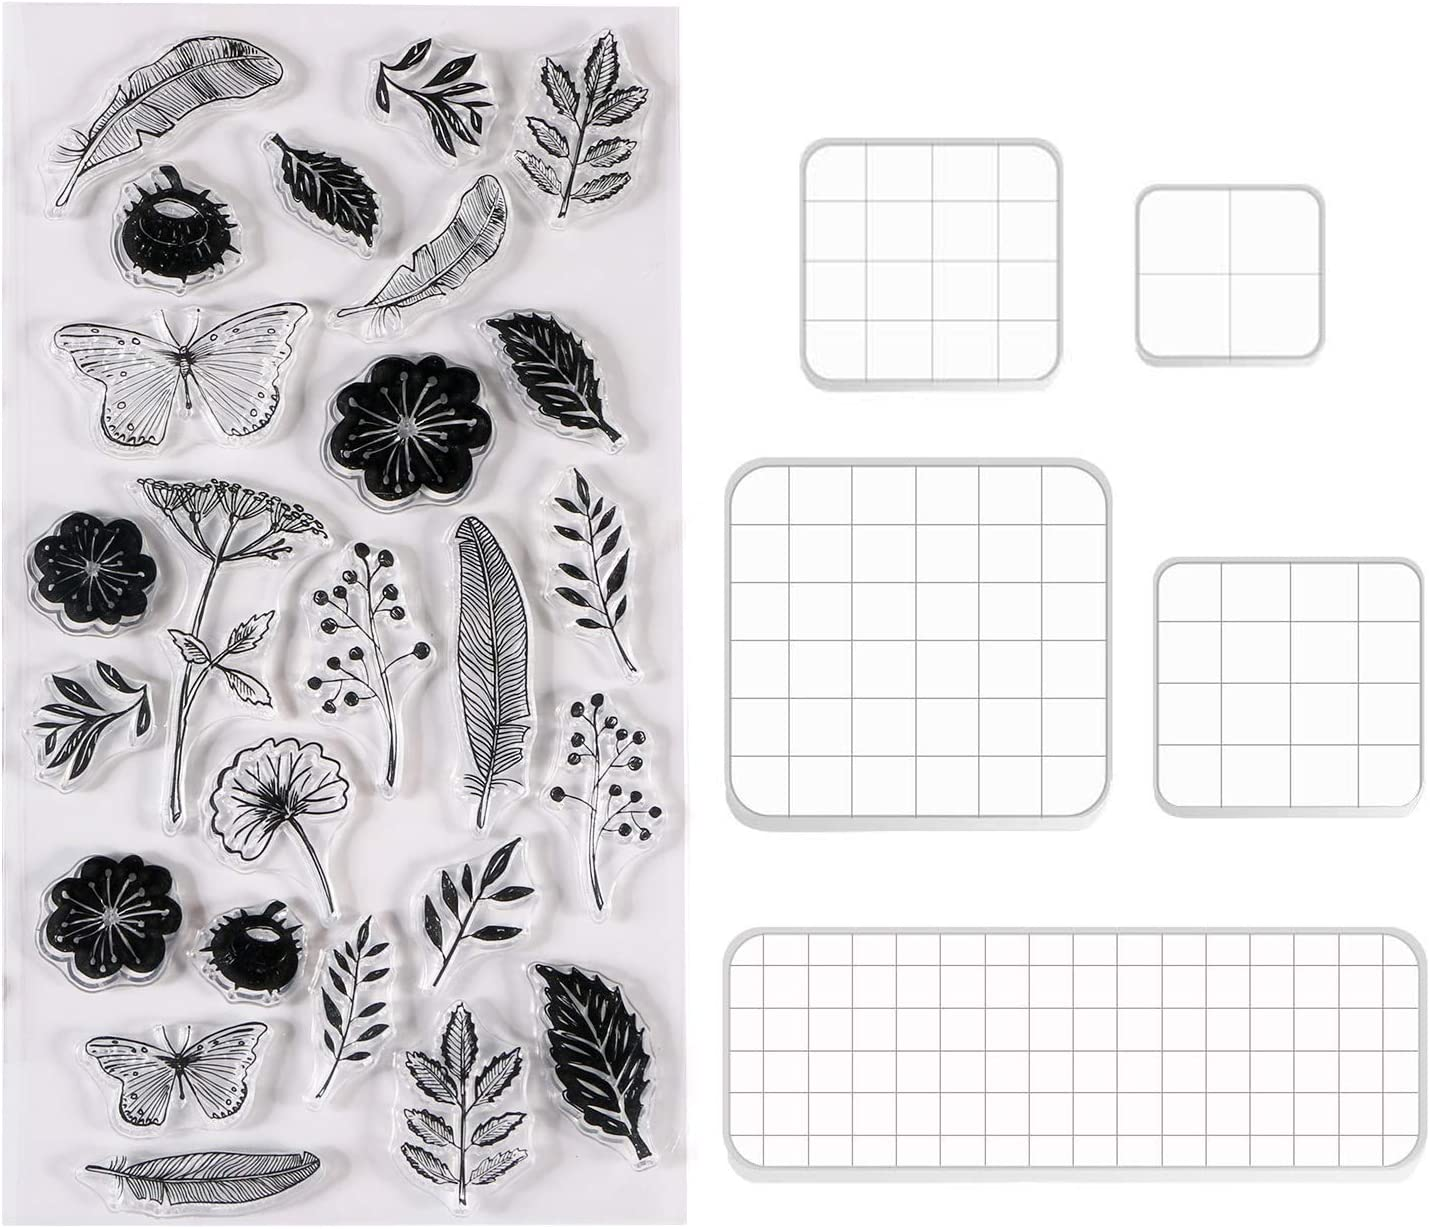 Kesoto Stamp Block 3pcs Acrylic Clear Stamp Set with Clear Grid Lines Assorted Sizes Stamp Blocks for Scrapbooking Card Making DIY Craft Project